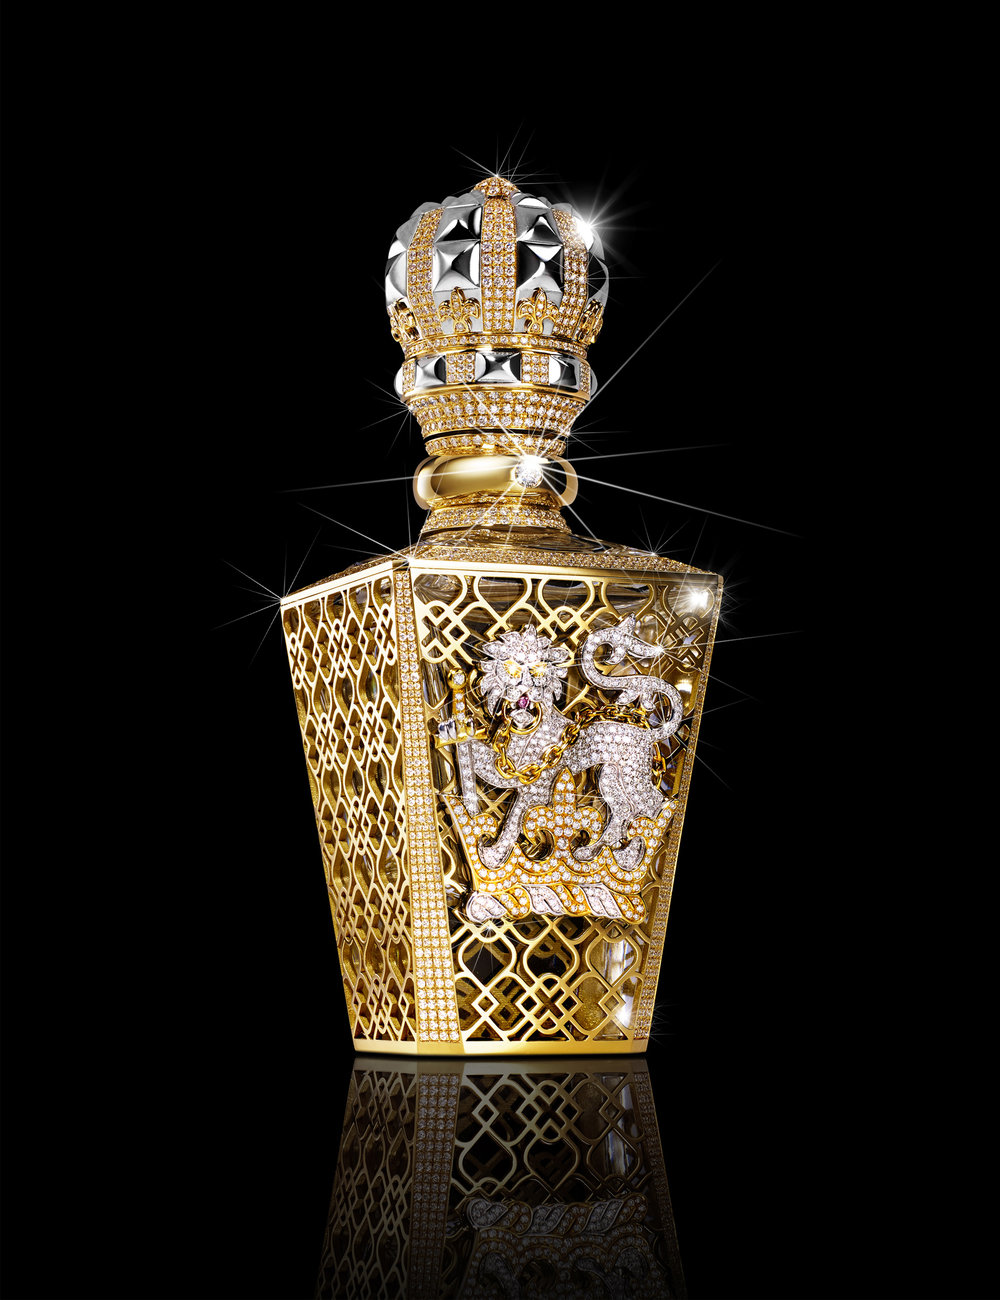 Perfume Bottle for Clive Christian - Available at Harrods 6th floor £143,000